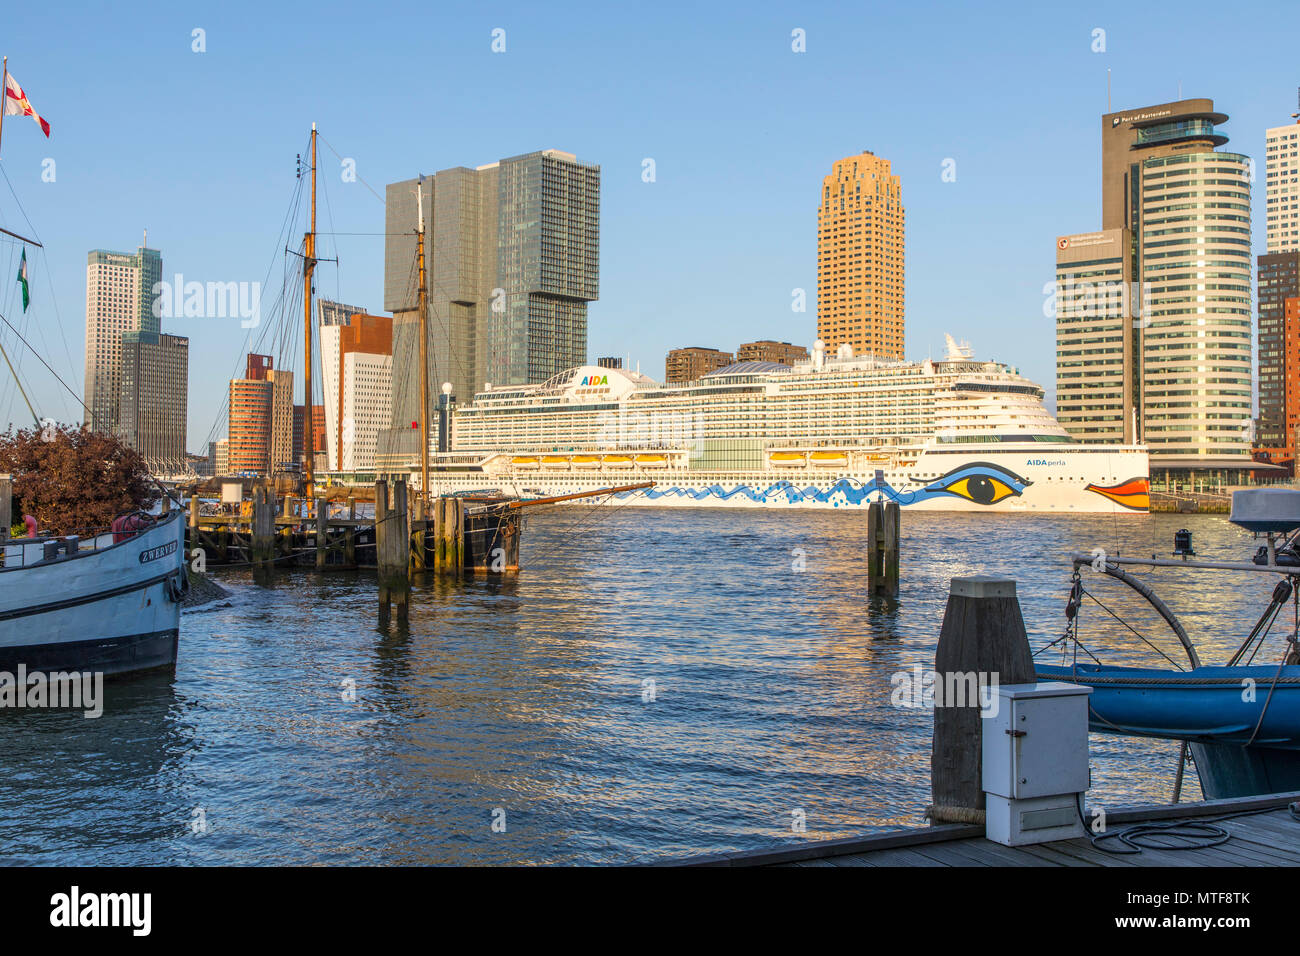 Rotterdam, skyline on the Nieuwe Maas,  skyscrapers at the 'Kop van Zuid' district, cruise ship 'Aida Perla' at the Cruise Terminal, - Stock Image